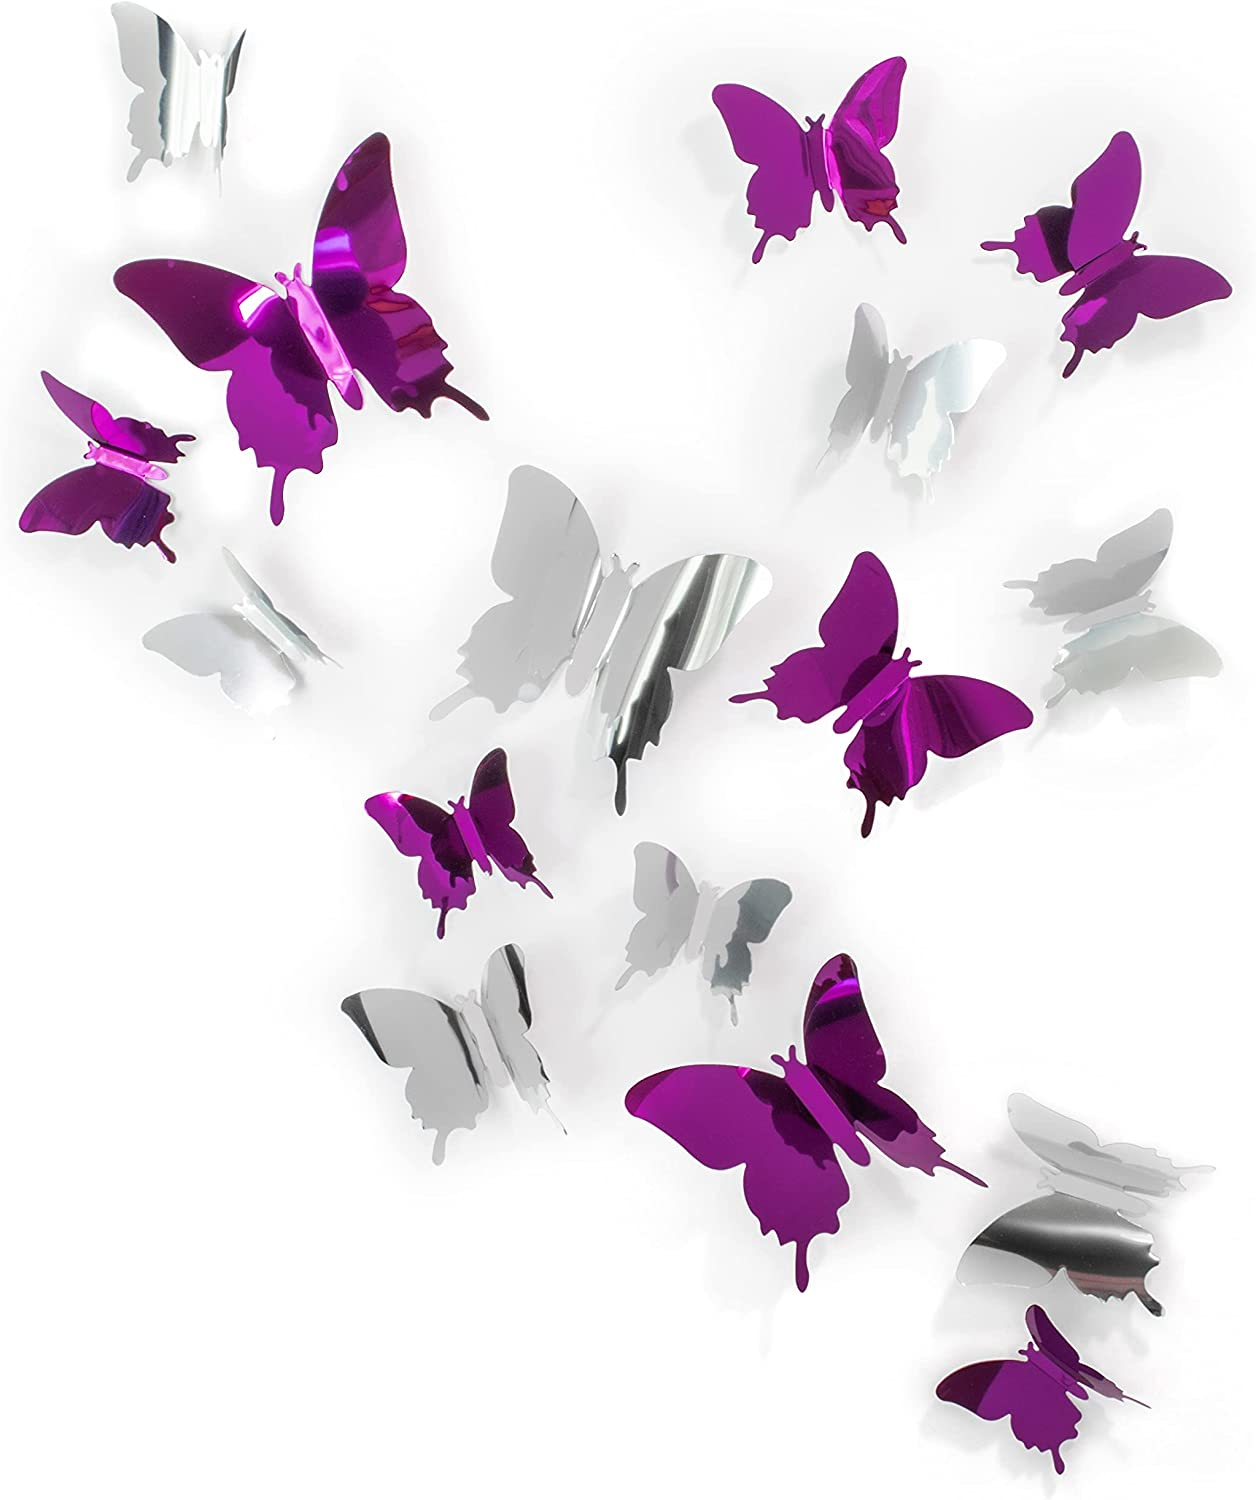 Cute Purple Silver Butterfly Wall Decor 24 pcs, Girls Room Wall Decals, Aesthetic Butterflies Stickers for Decorations, Teen Girls Room Decor